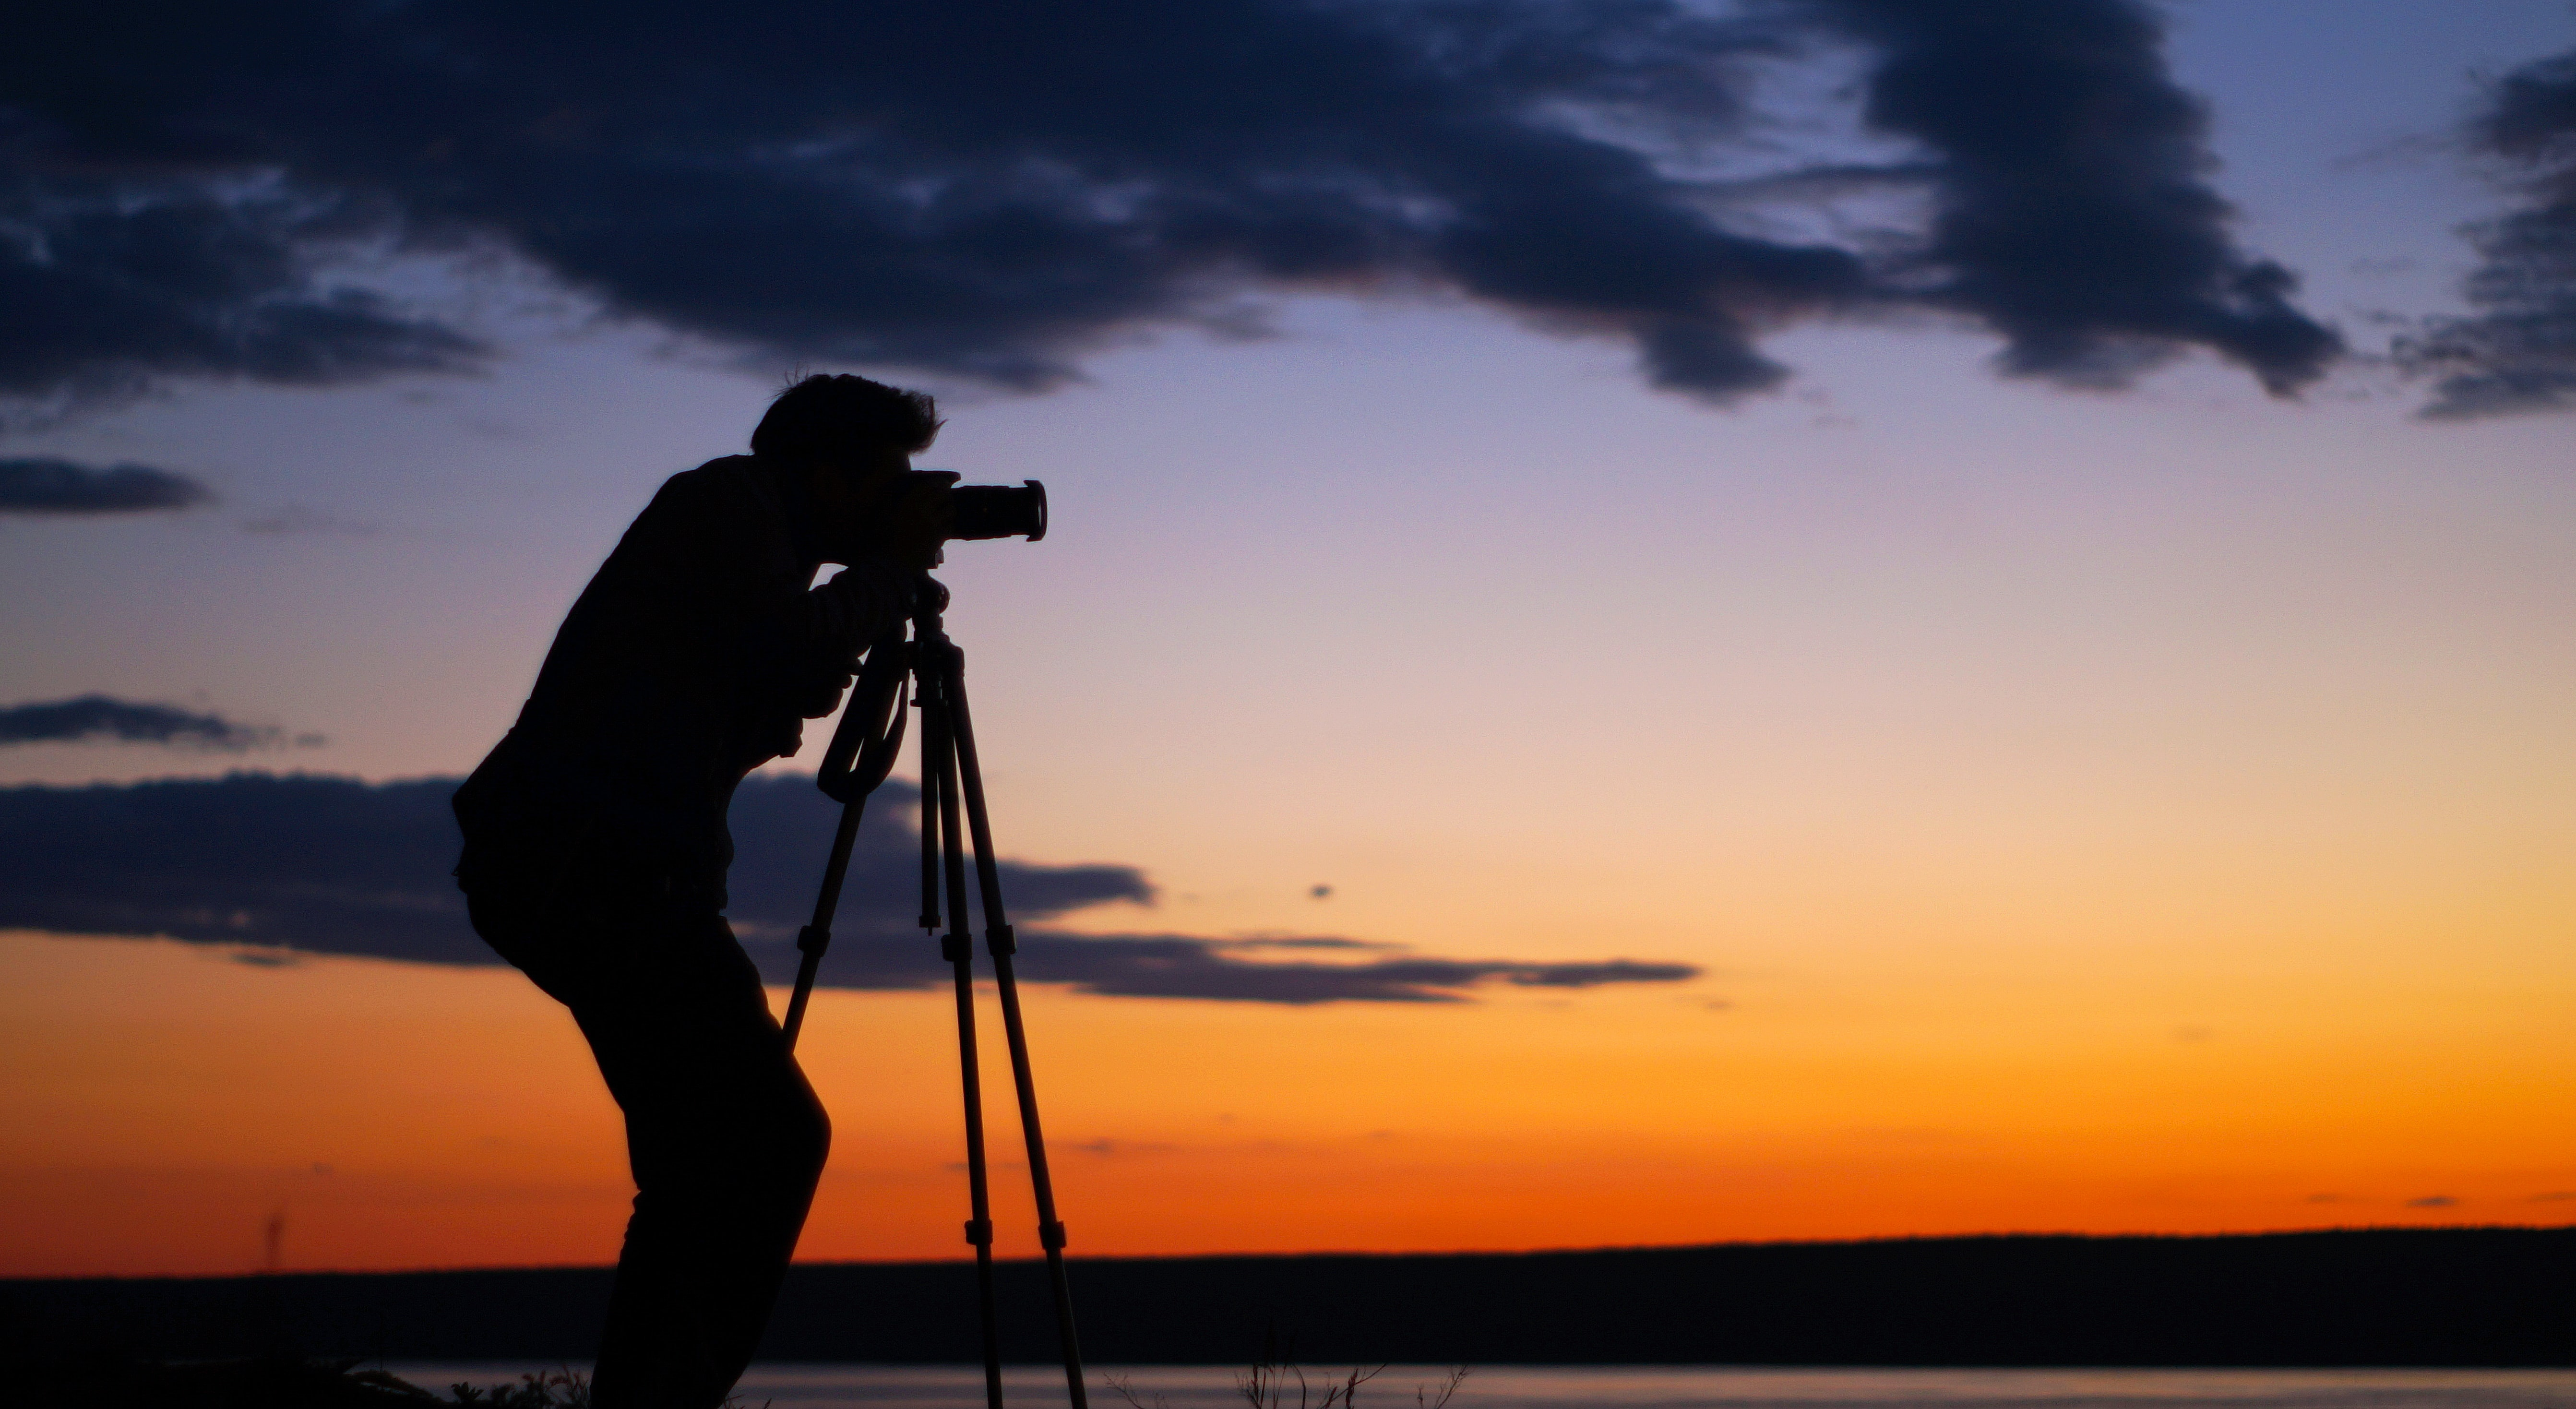 silhouette of man taking picture